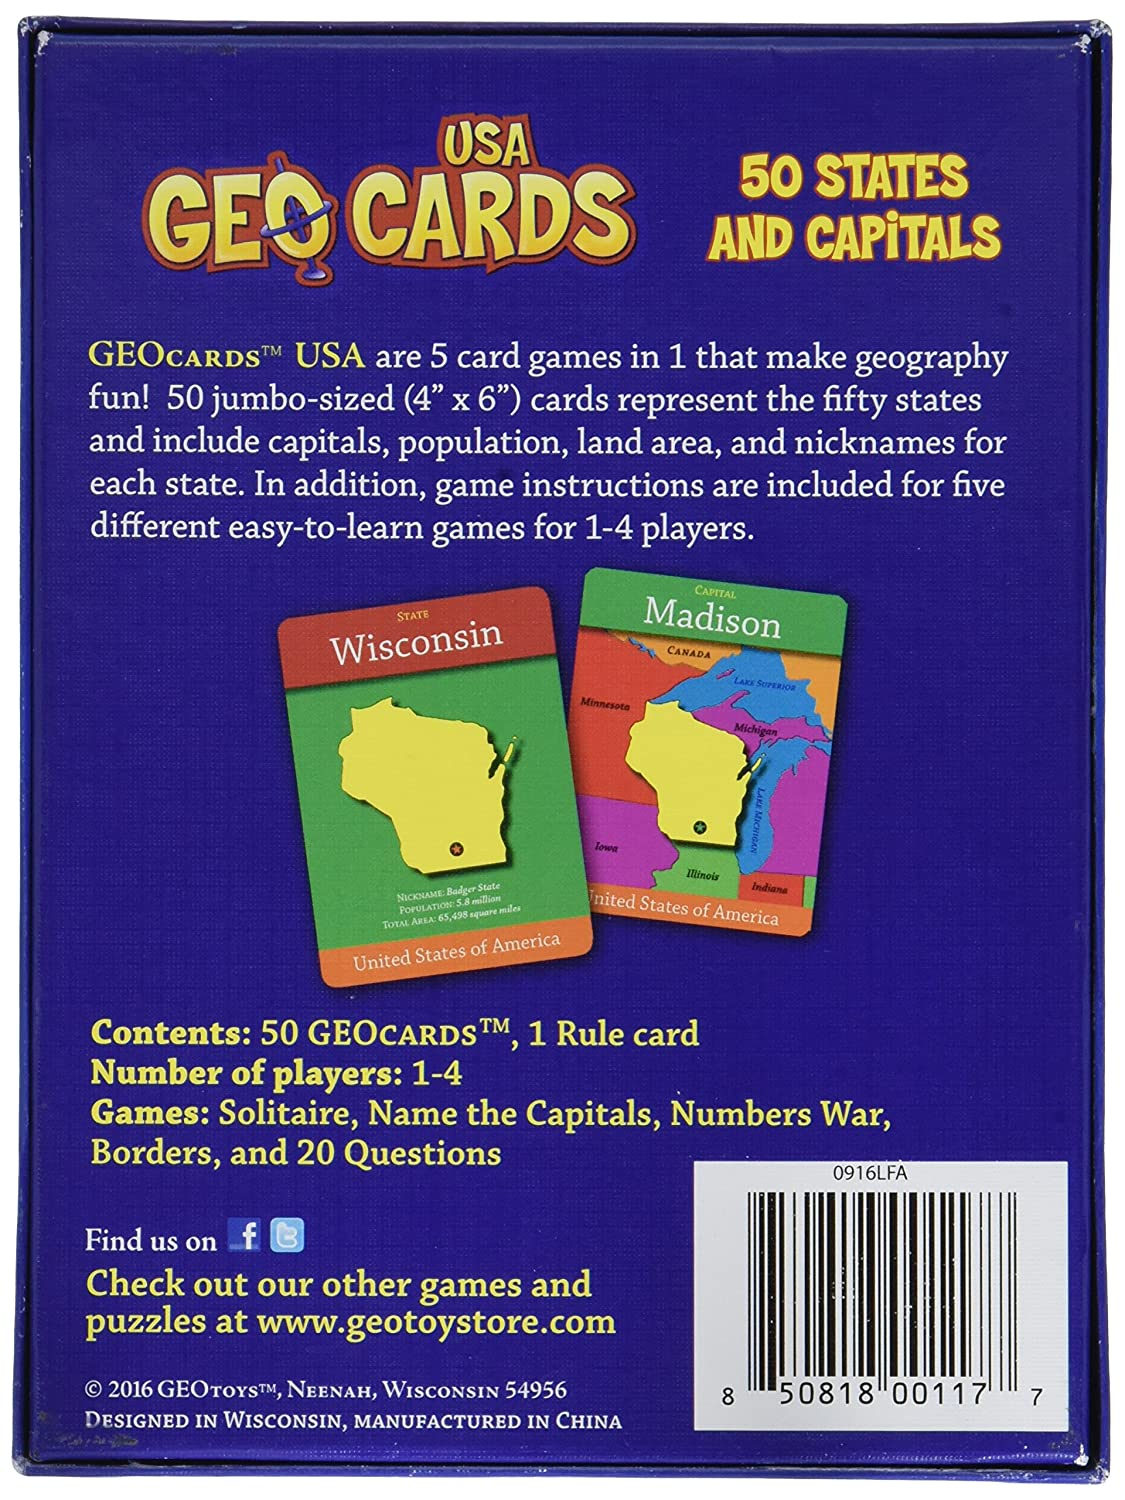 50 States Map Game Printable Usa Map Us State Map Quiz Plus Us Map in addition  furthermore NAME IT  Fifty States Learning Game  A Helping Hand  040068 moreover Name The Us States Map Quiz Games United By Bmueller Find Also And besides Us Map Quiz Addicting Games New States Game Addicting Games Us Map furthermore Us Map Quiz Sheppard Game Europe Maps With Countries And likewise Us Map Games With State Names United States Map Quiz For Game Name in addition Name The Us States Map Quiz Map United States Learning Games Boay moreover 50 States Map With Names us states map quiz us state map quiz plus moreover The 50 States Quiz GameDownload Free Programs Online together with 50 States Map Quiz united states map game us state map quiz plus us also Amazon    GeoCards USA   Educational Geography Card Game  Toys furthermore United States Map Name Game Best Four Maps Show 50 States And moreover Find the US States Quiz additionally  also Name The States Map 50 states map game us map games with state names. on 50 states name game